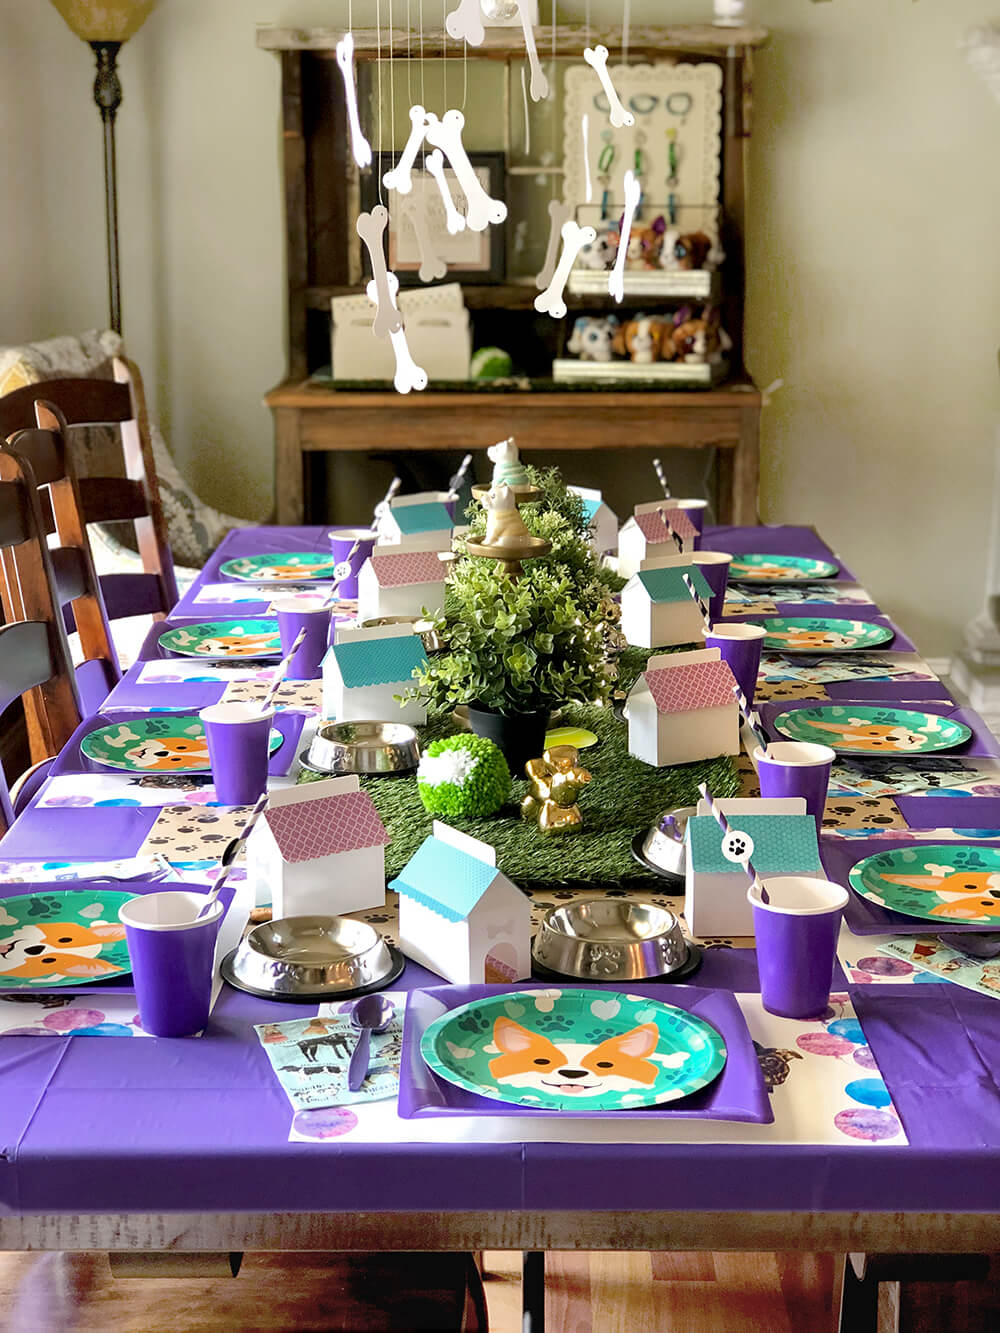 Full puppy party table design - Dog Themed Puppy Birthday Party Ideas